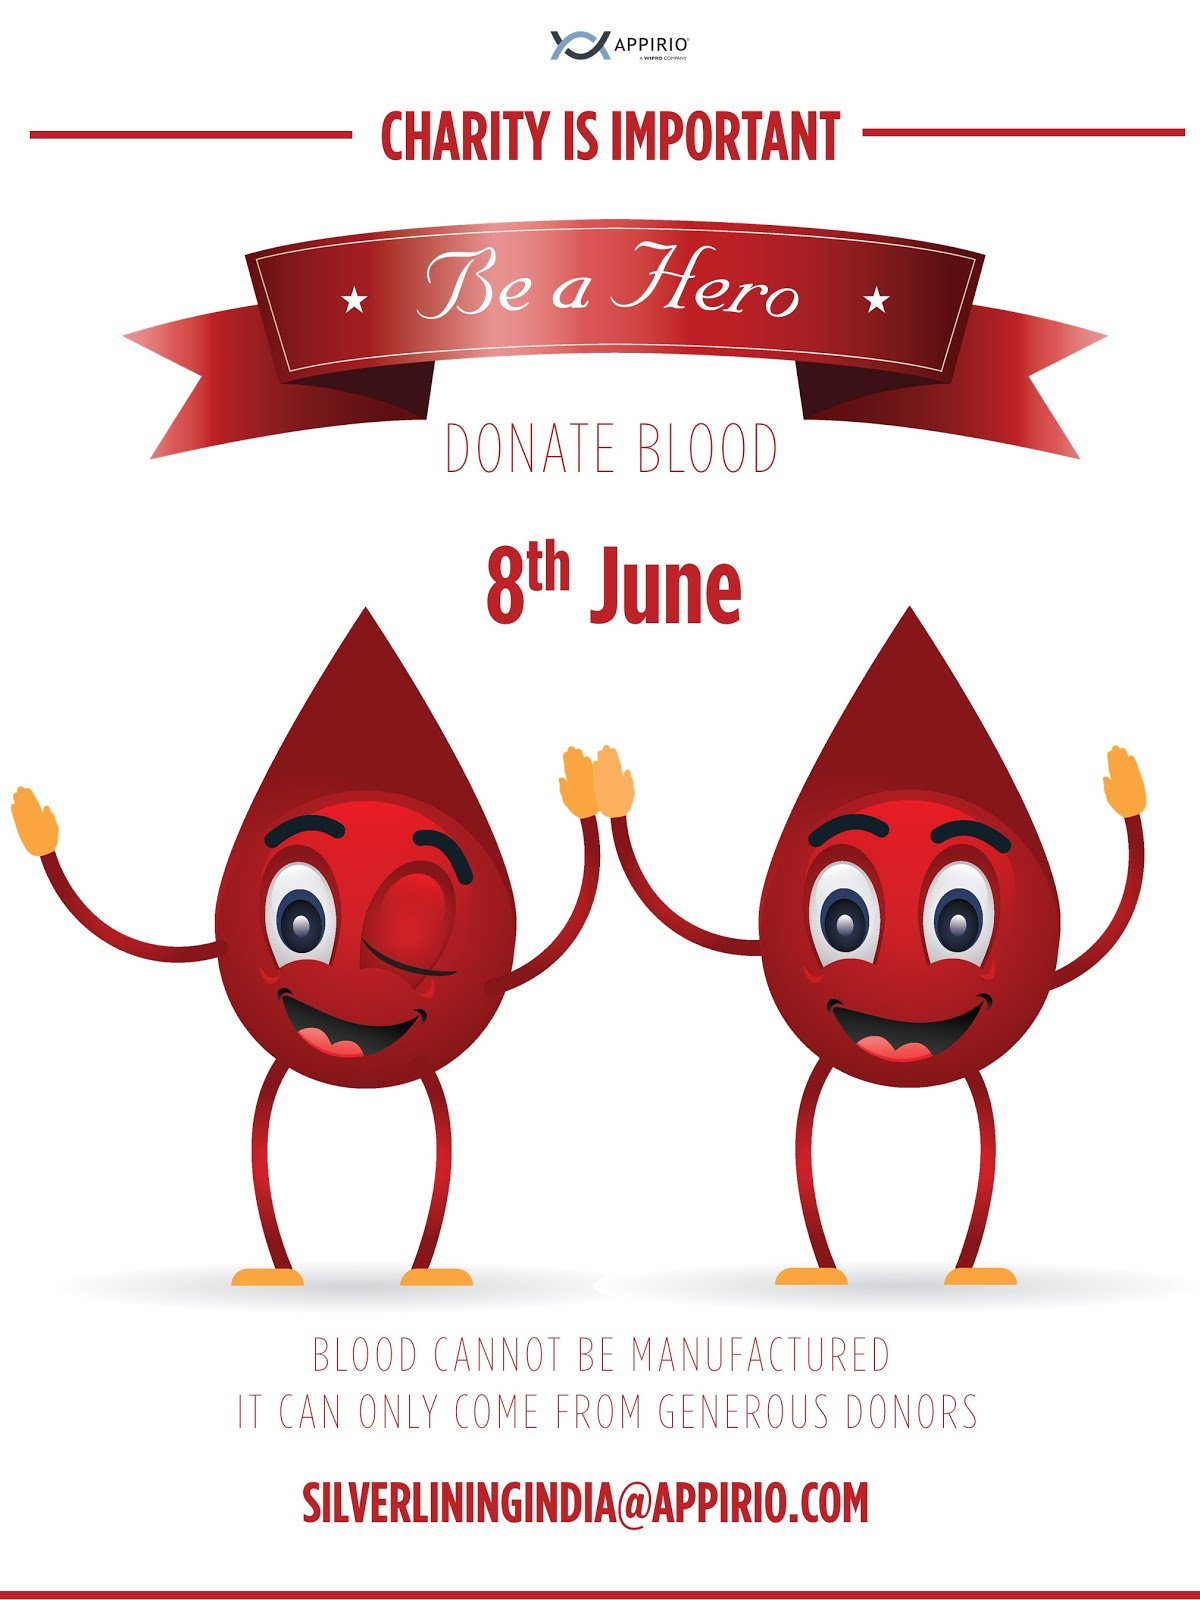 Blood donation drive posters deepanshus works blood donation drive posters altavistaventures Image collections